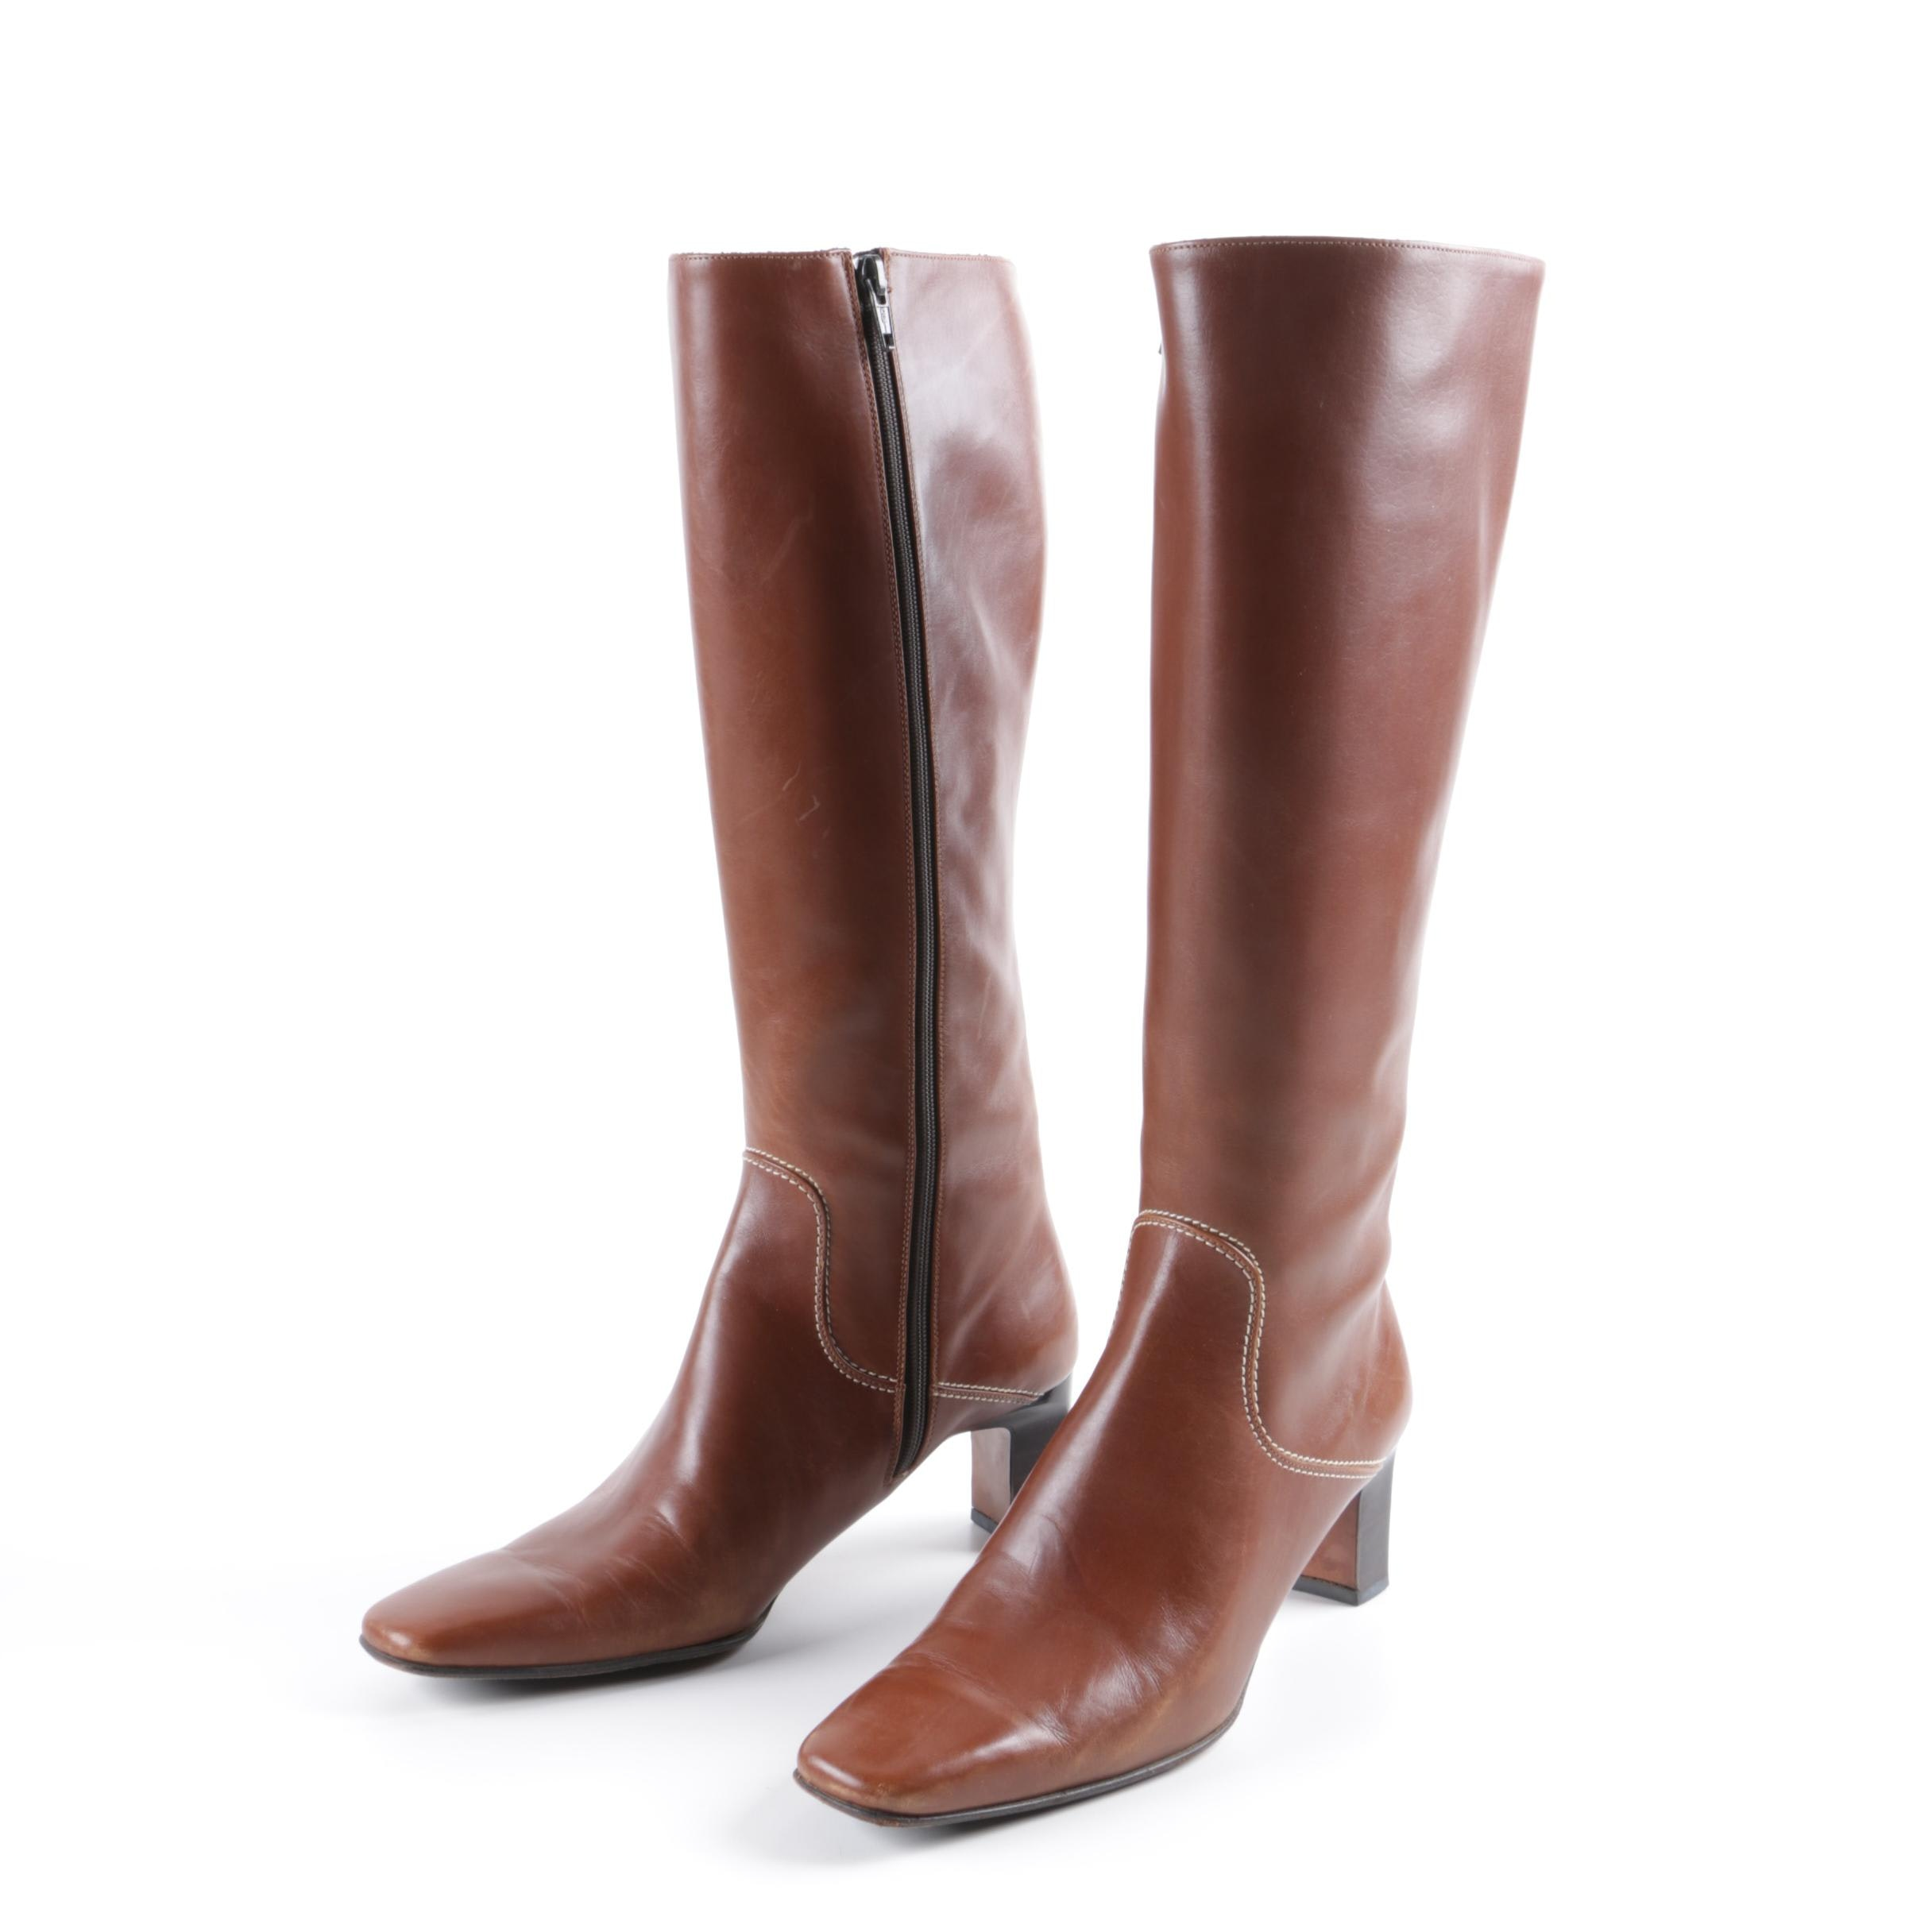 Cole Haan Brown Leather Knee-High Boots